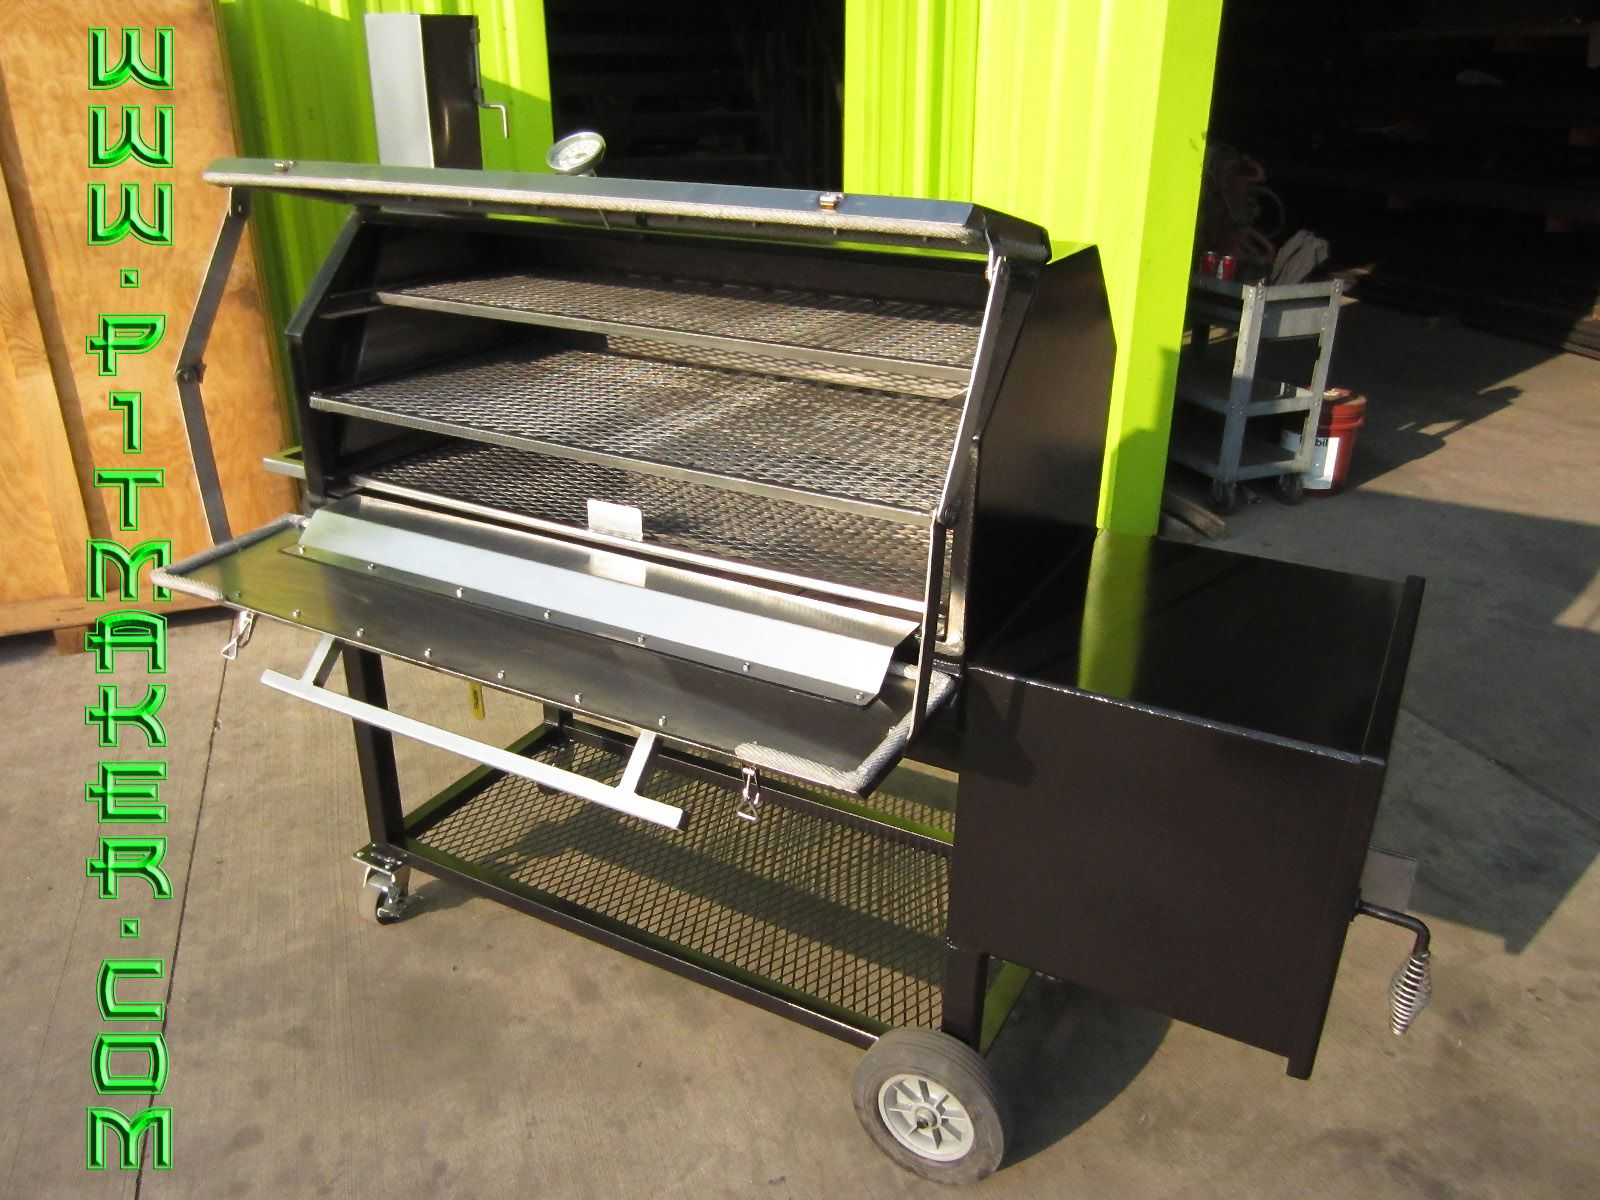 PITMAKER.COM stainless smoker. The one we shall have ...